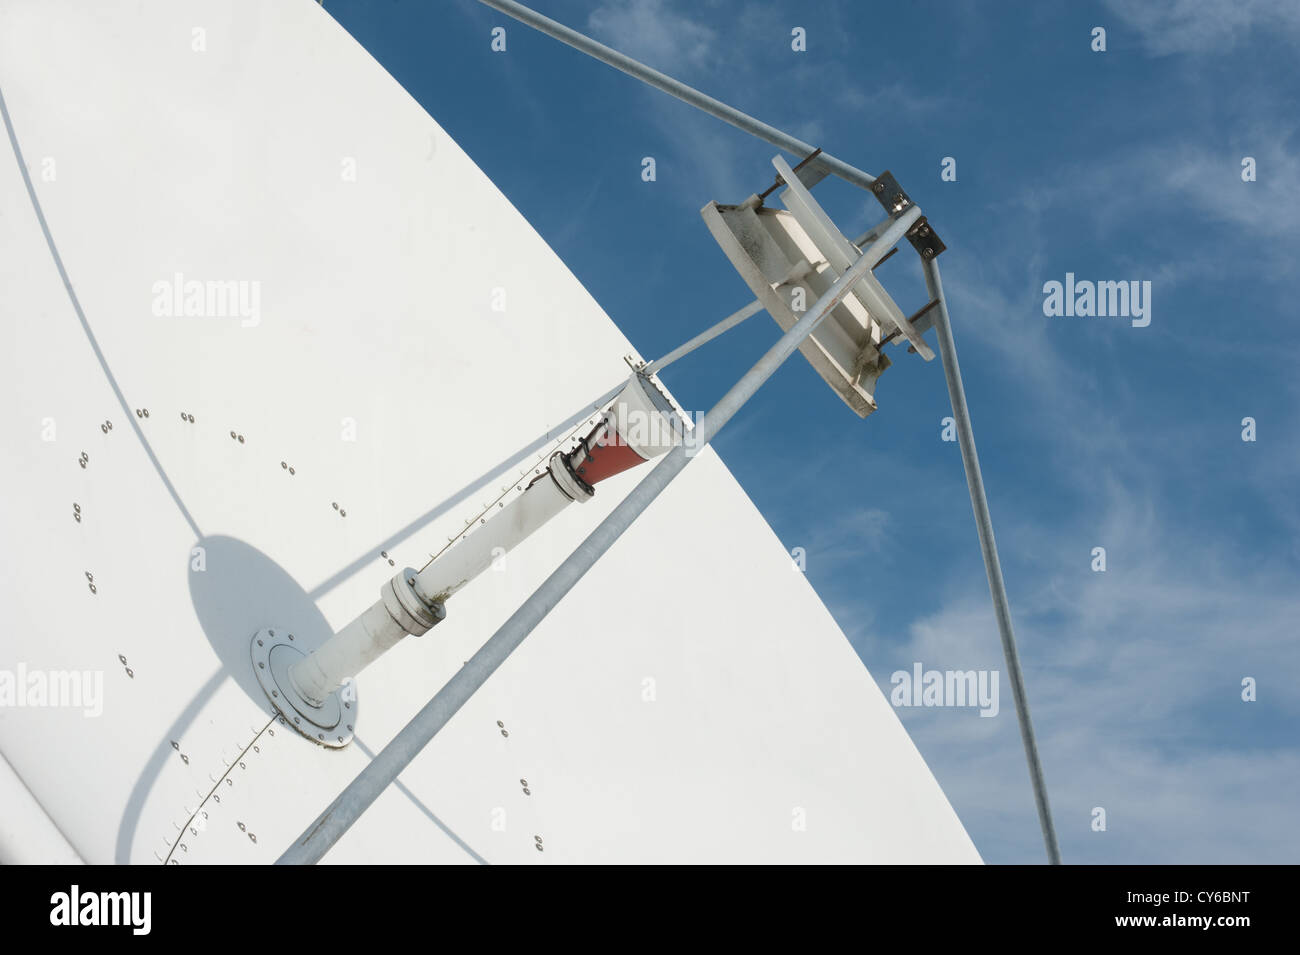 antenne parabolique banque d'images, photo stock: 51157396 - alamy